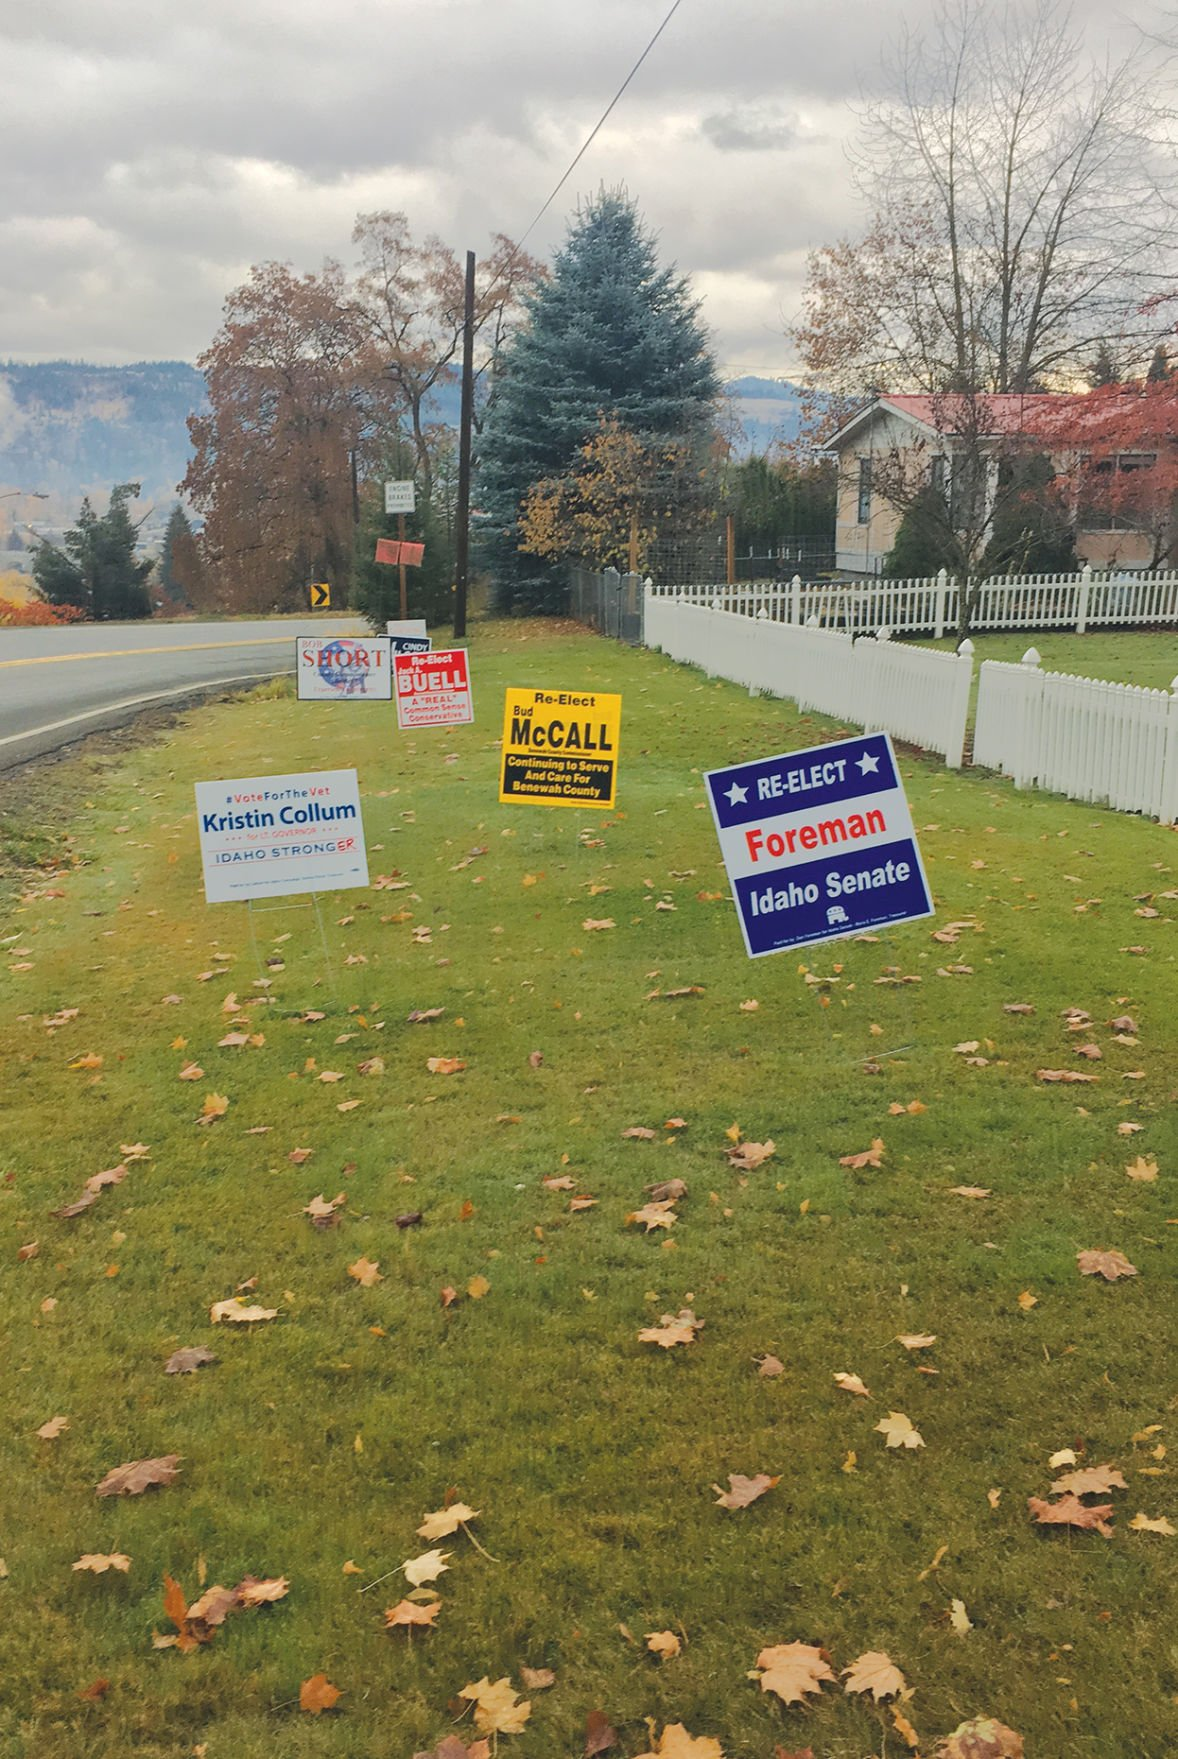 Lots of choices at the polls Tuesday